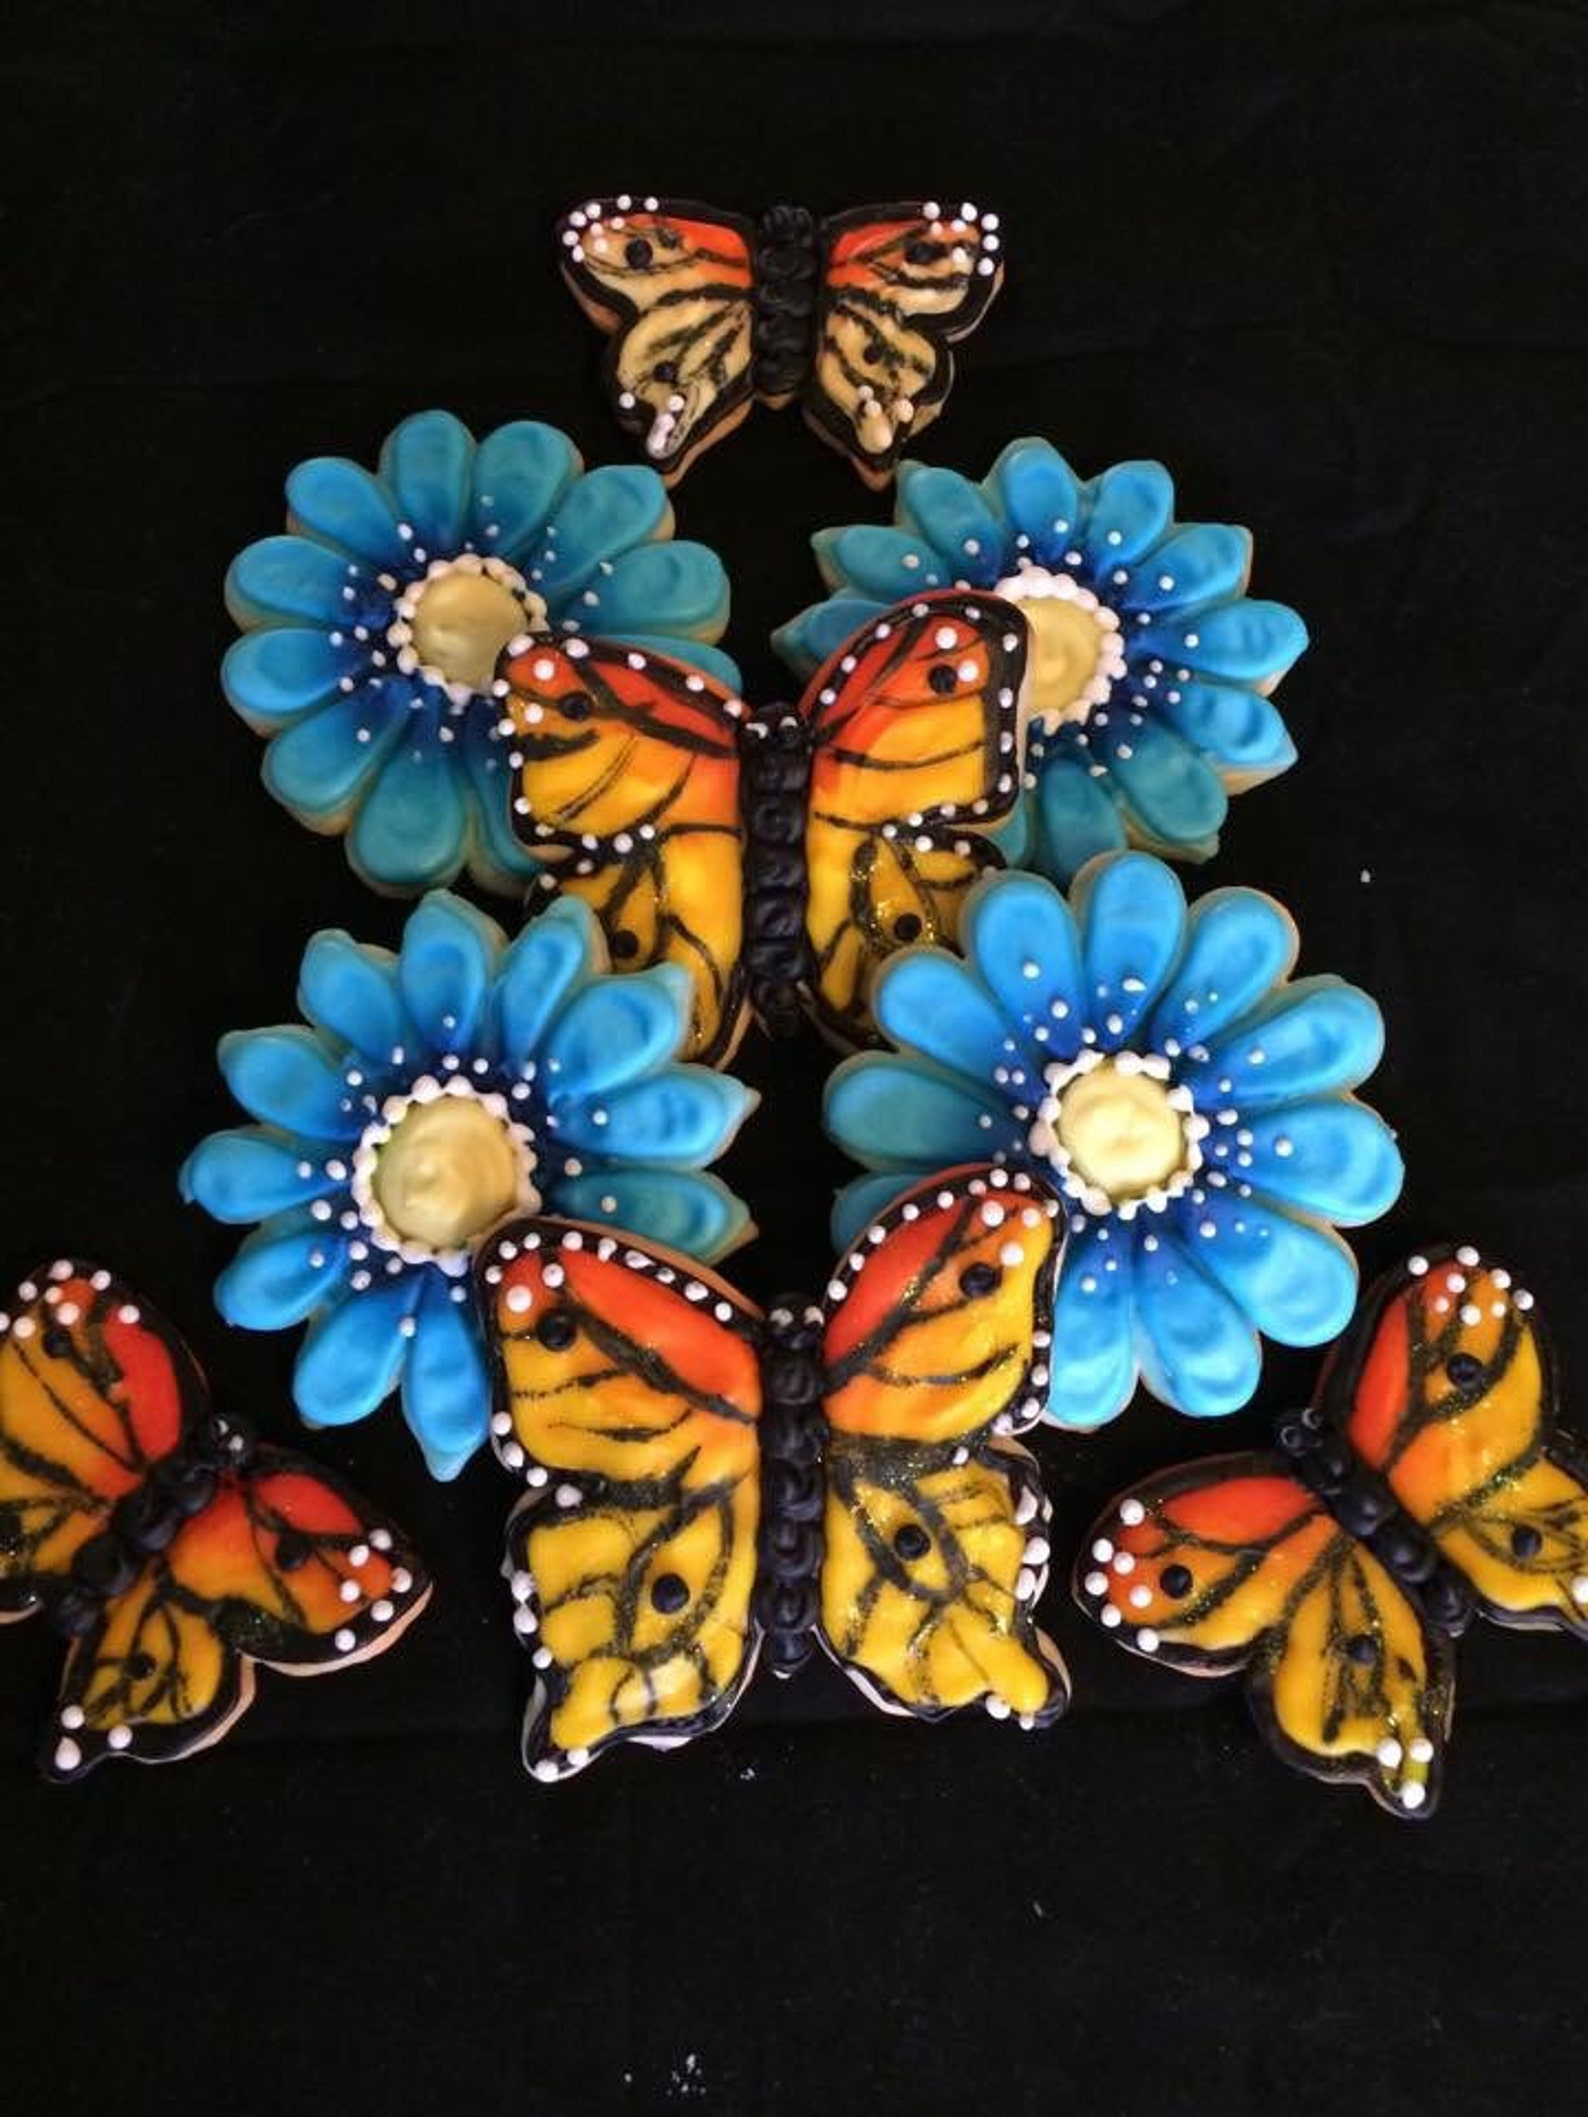 Flowers and Butterflies Cookies